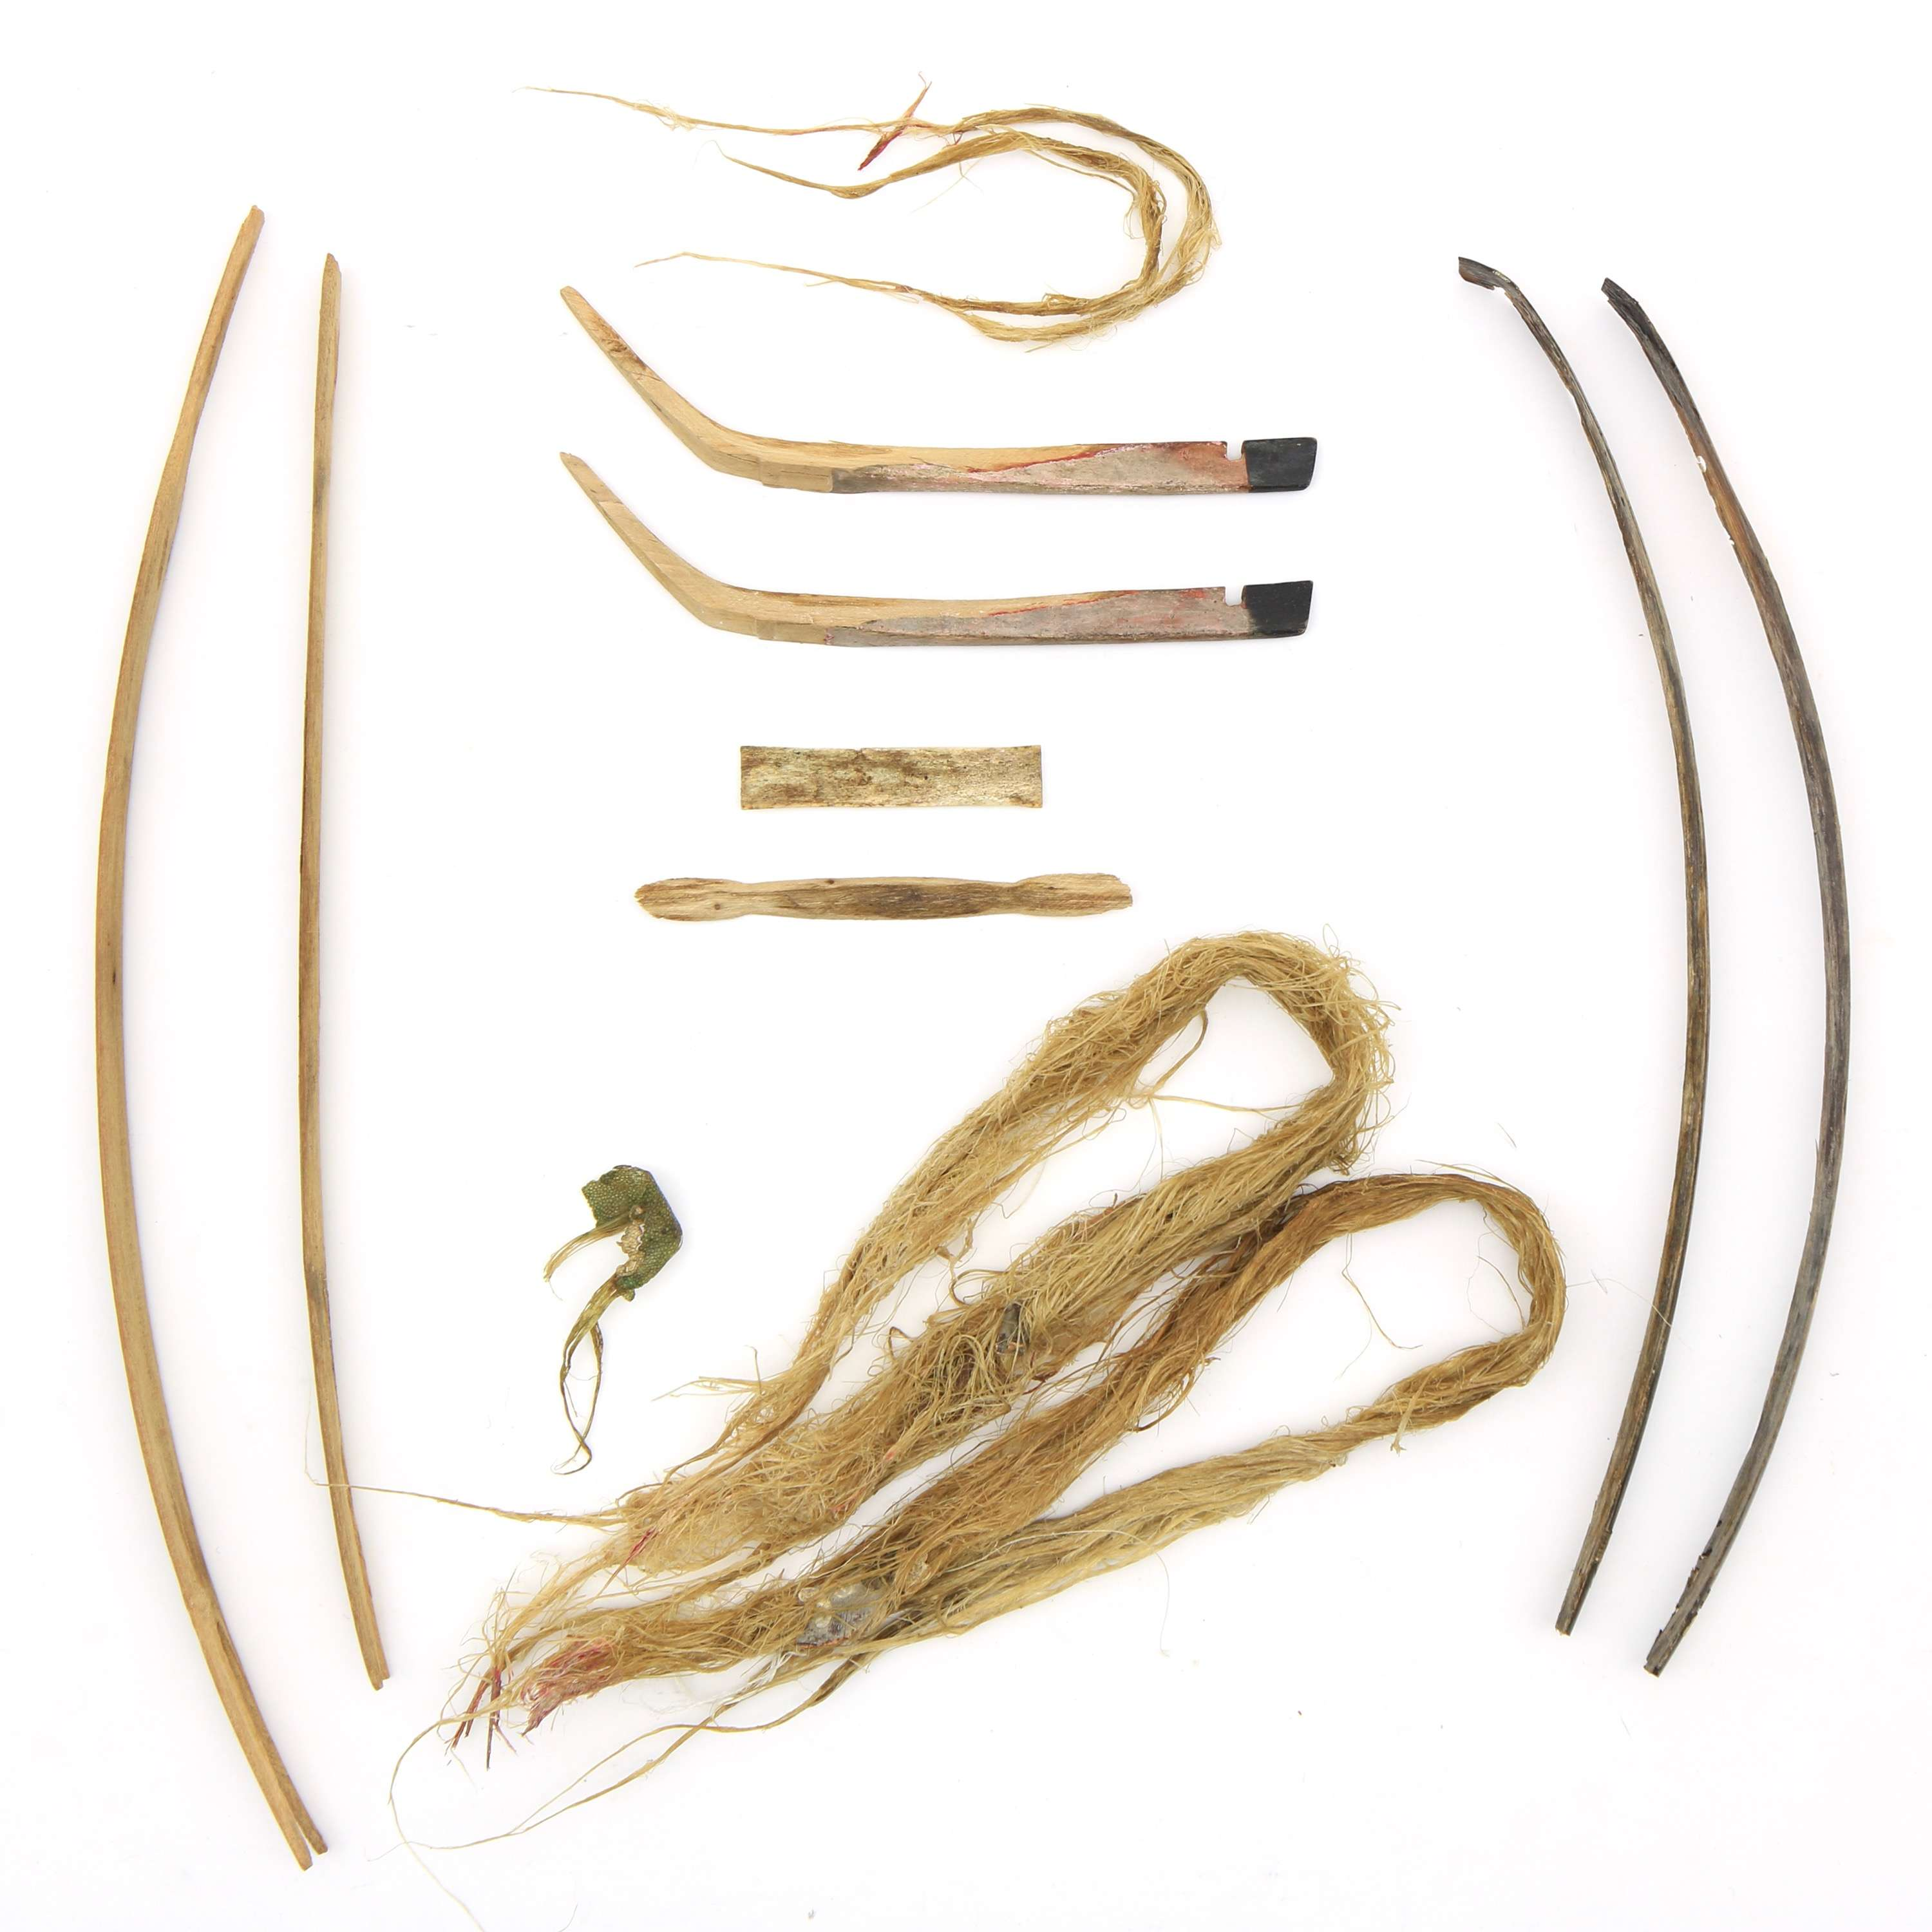 A deconstructed Qing bow